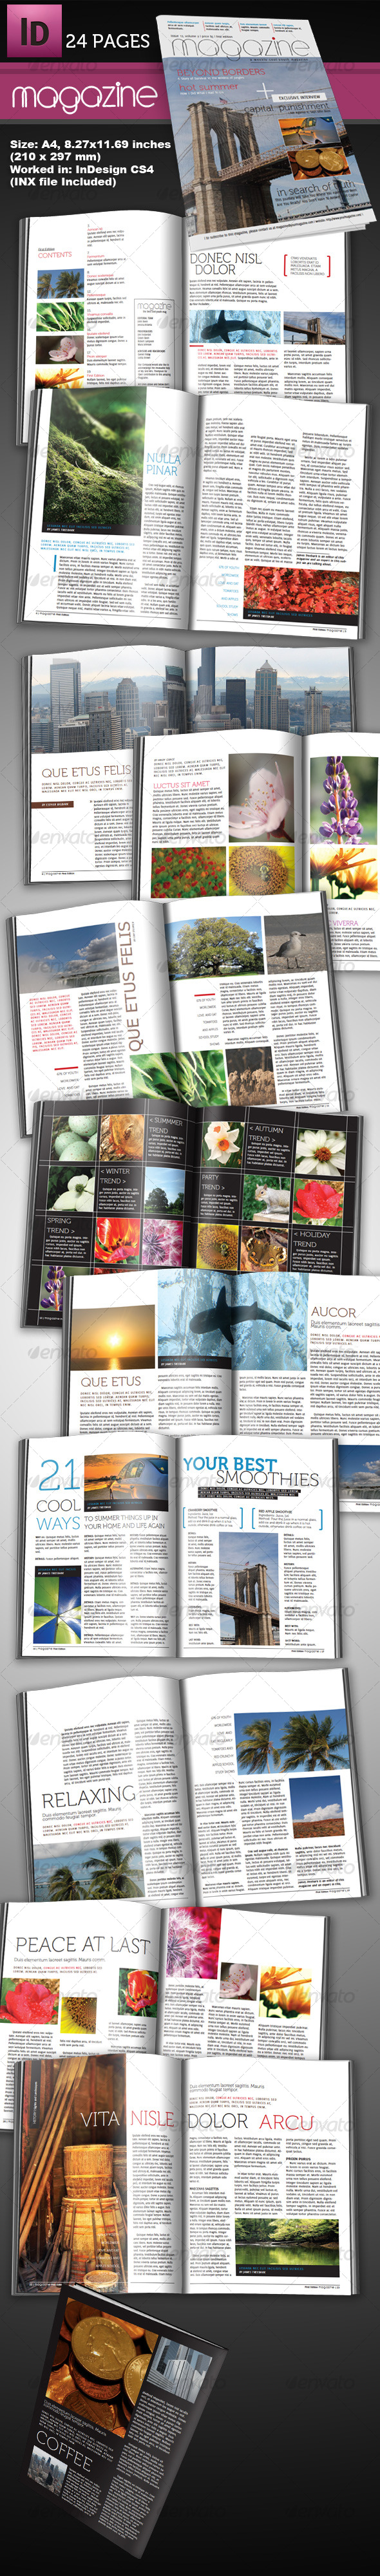 10 Full Magazine Layout Templates for InDesign and Photoshop - Best ...